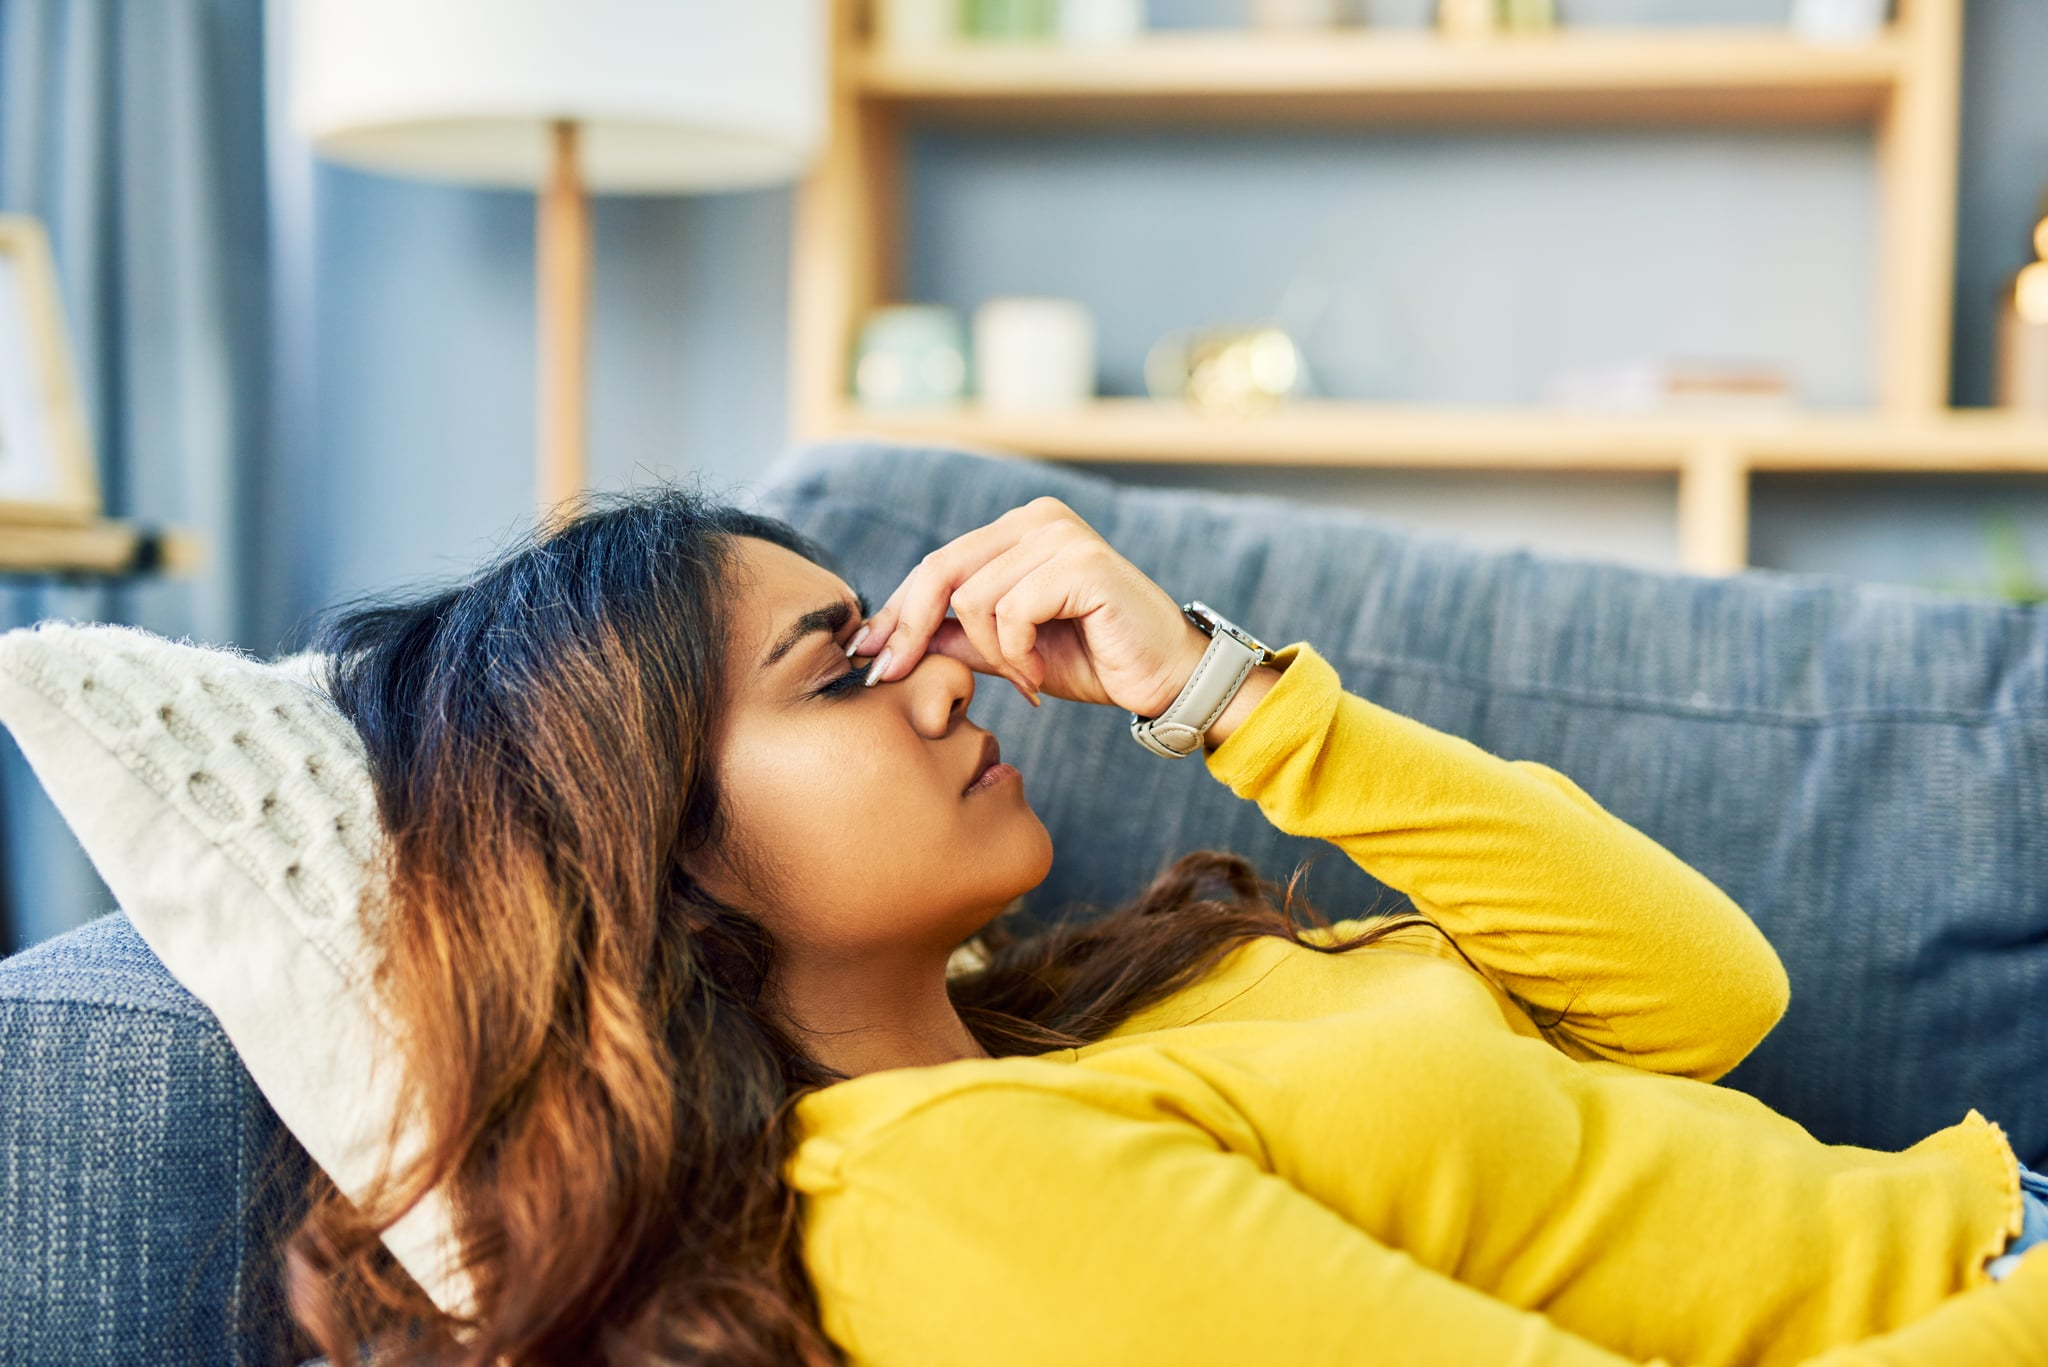 Shot of a young woman experiencing a bad headache while relaxing at home